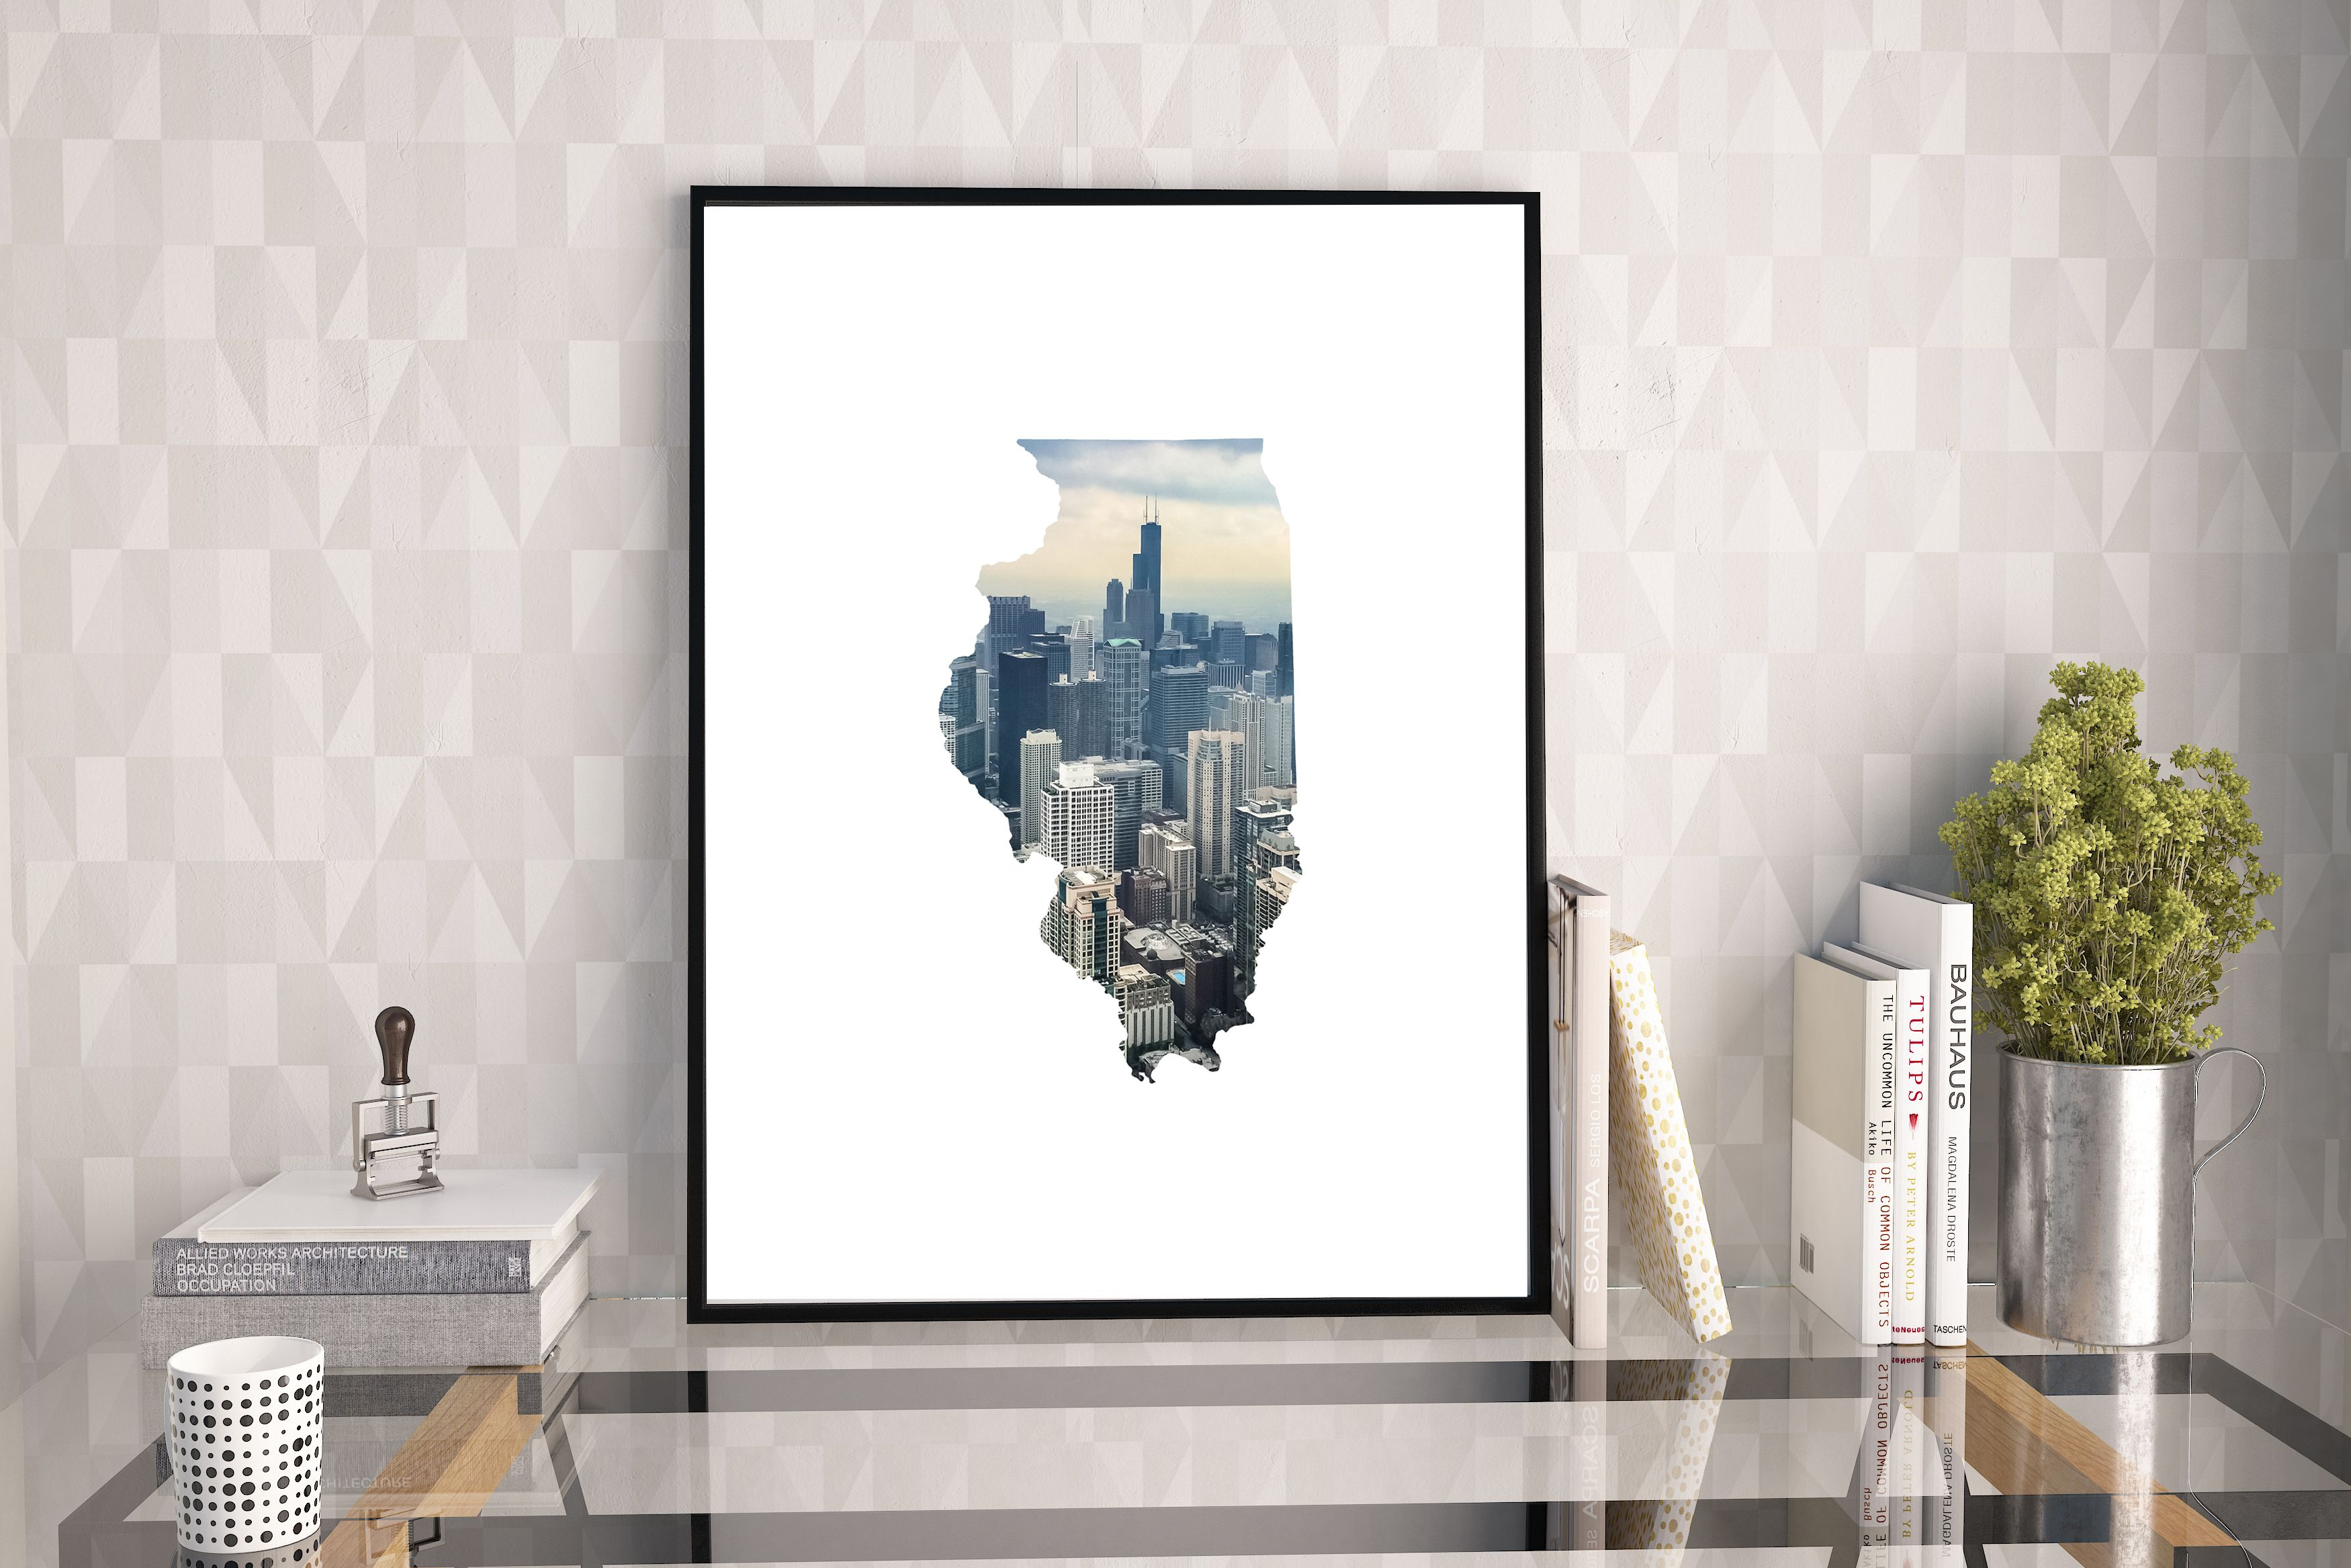 Illinois State Map Art - Chicago Skyline - Cityscape - Modern Large Print - Unique Map Gift - Cool Map - Large Landscape Photos - Travel Map